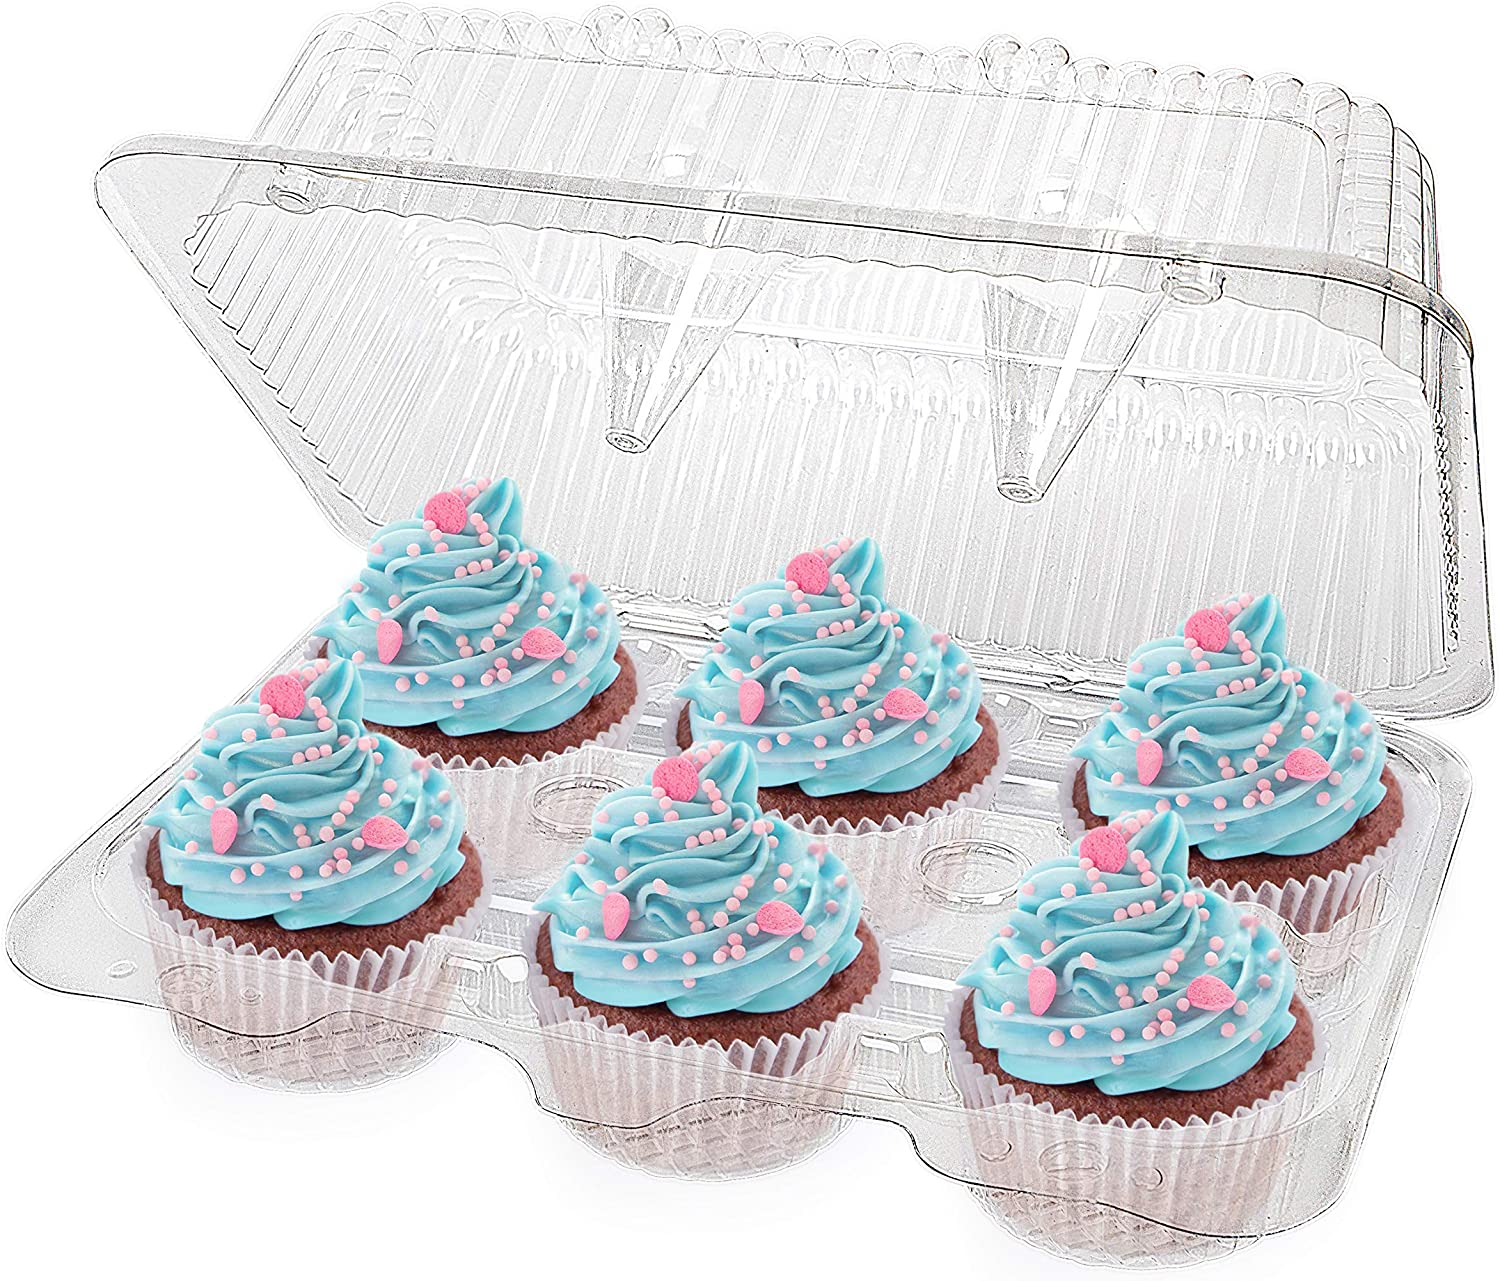 Stock Your Home 6-Compartment Disposable Containers (40 Count) - Plastic Cupcake Containers - Disposable Trays for Cupcakes & Muffins - Hinged Lock Cupcake Clamshell - Deep Cups for Cupcake Storage